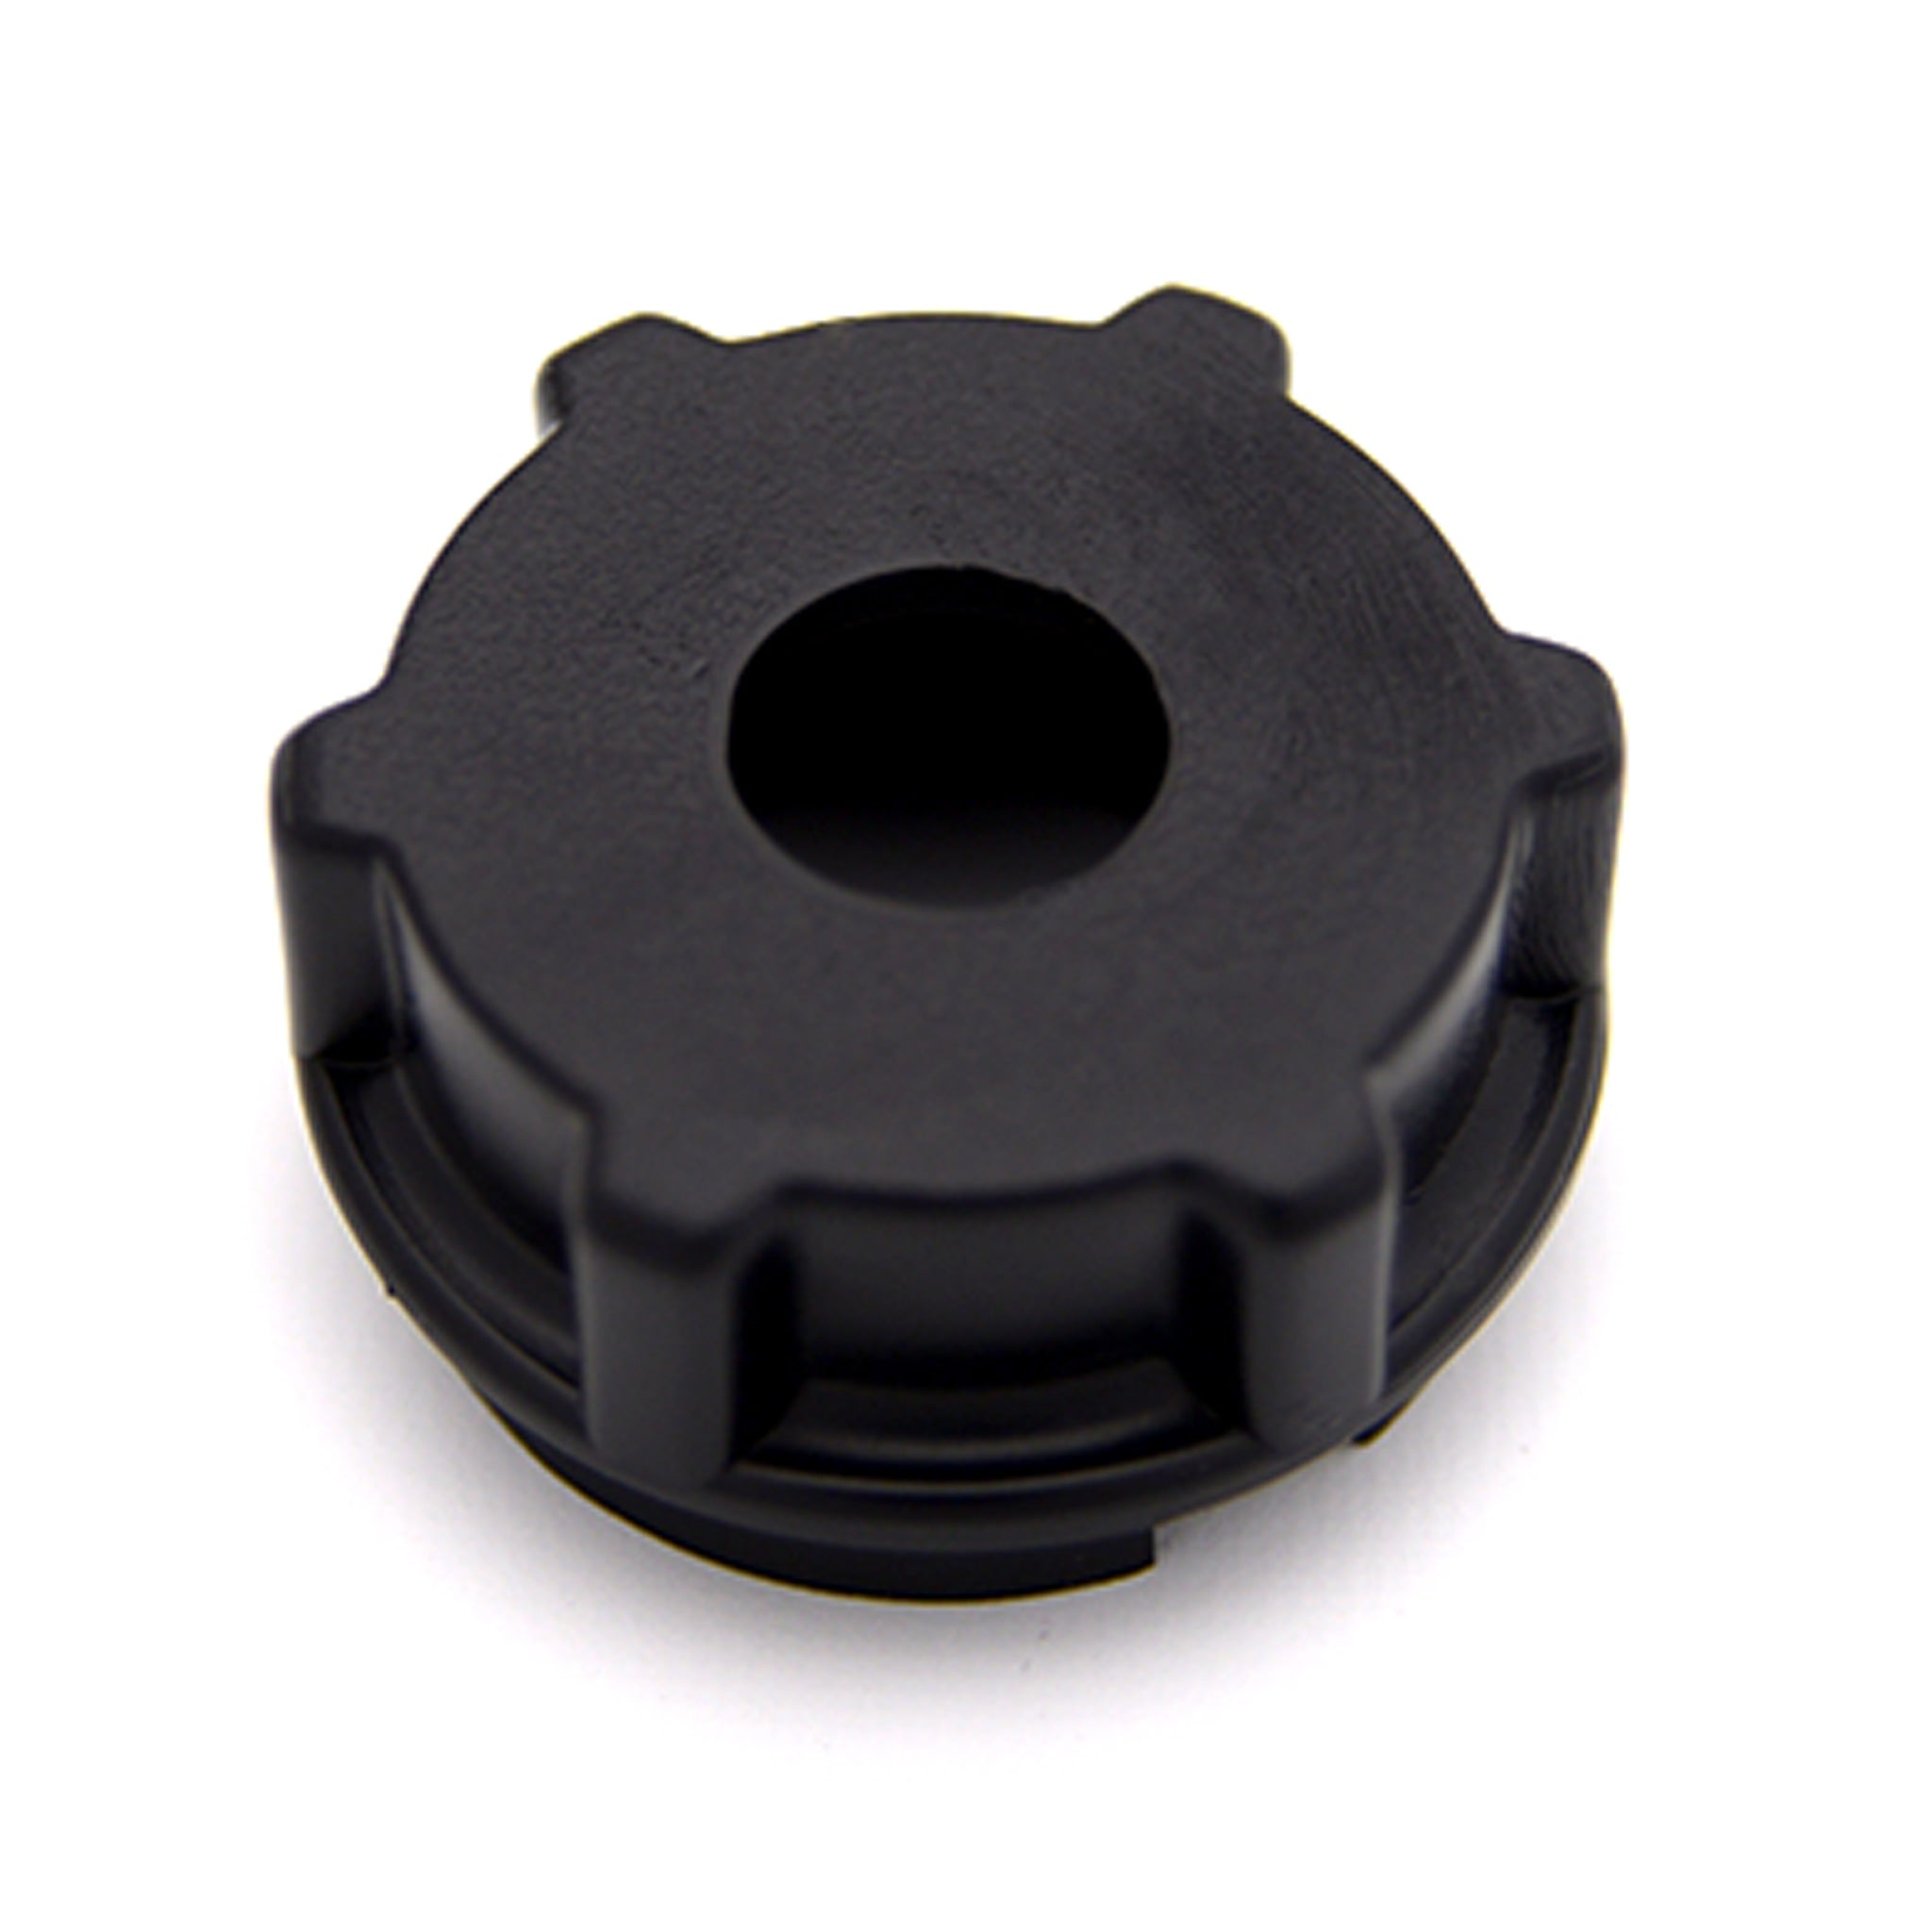 Juicing Nozzle replacement for your Solostar® Juicer.